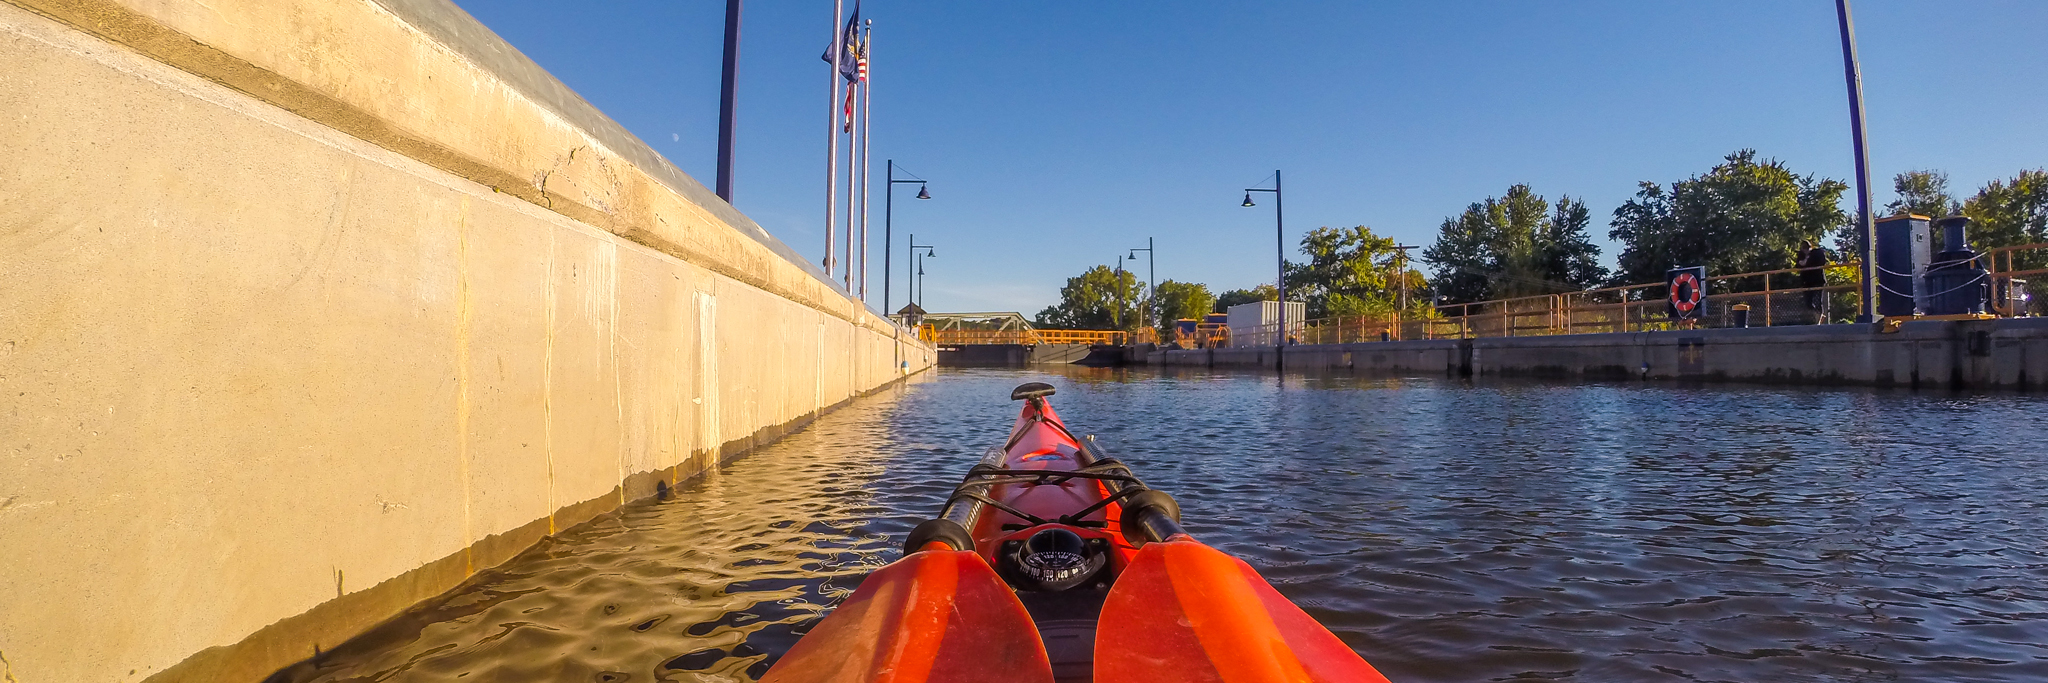 chip_macalpine_erie_canal_kayaking_9274